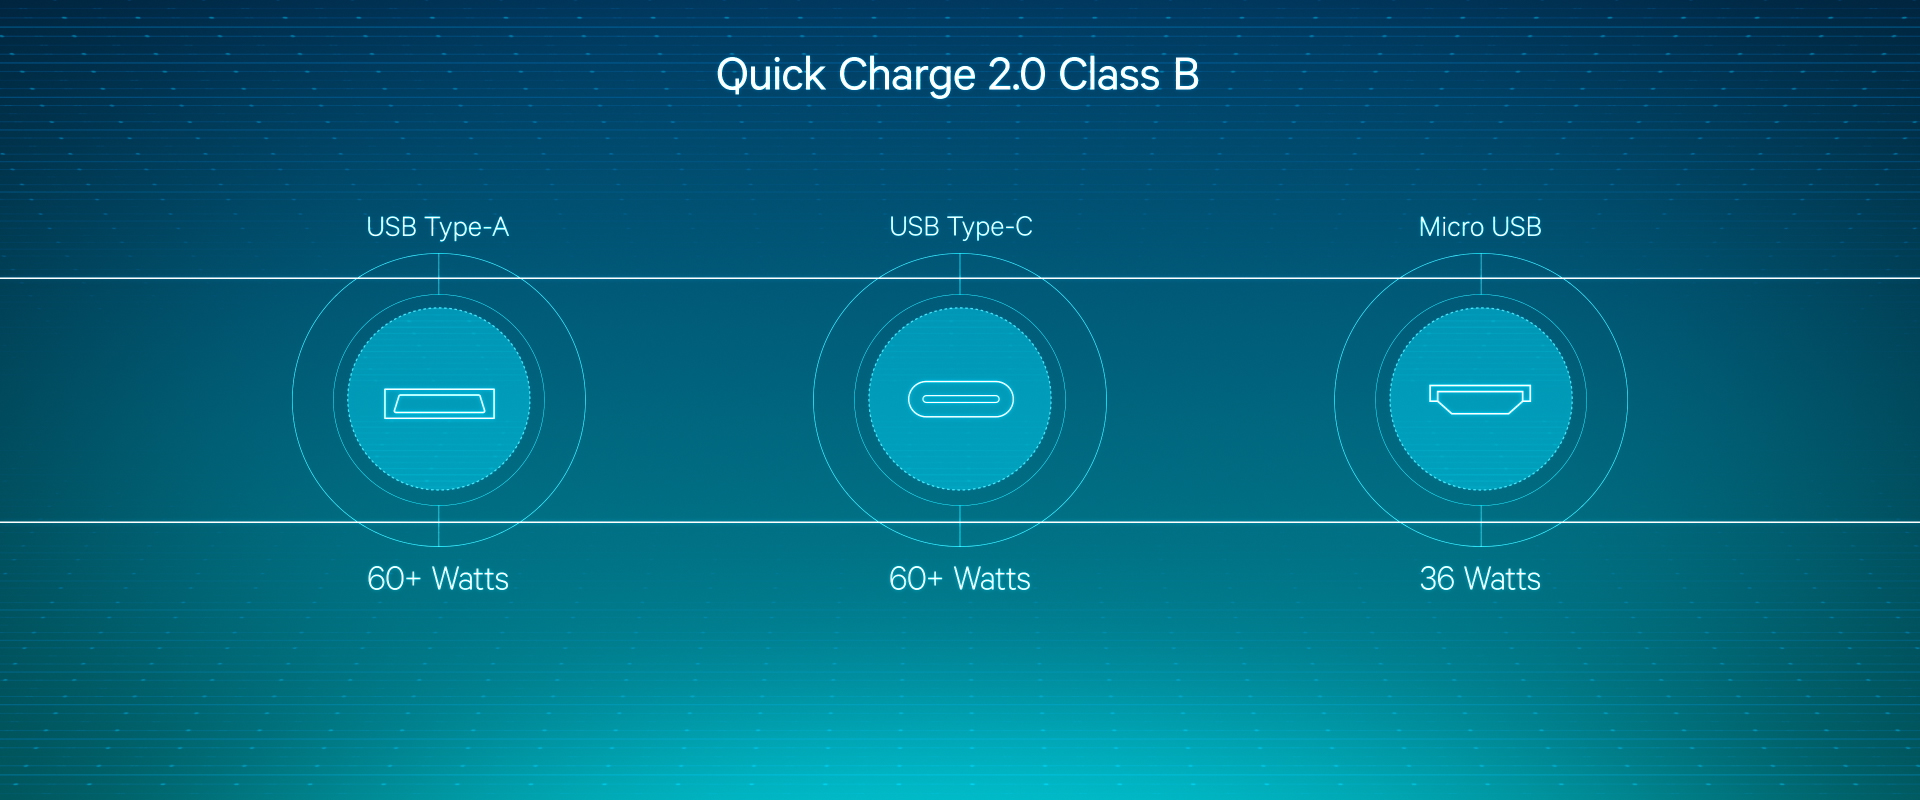 QC344_quick-charge2_ProRes422HQ_no-legal-003.mov Comp 2 (0-01-45-13).jpg